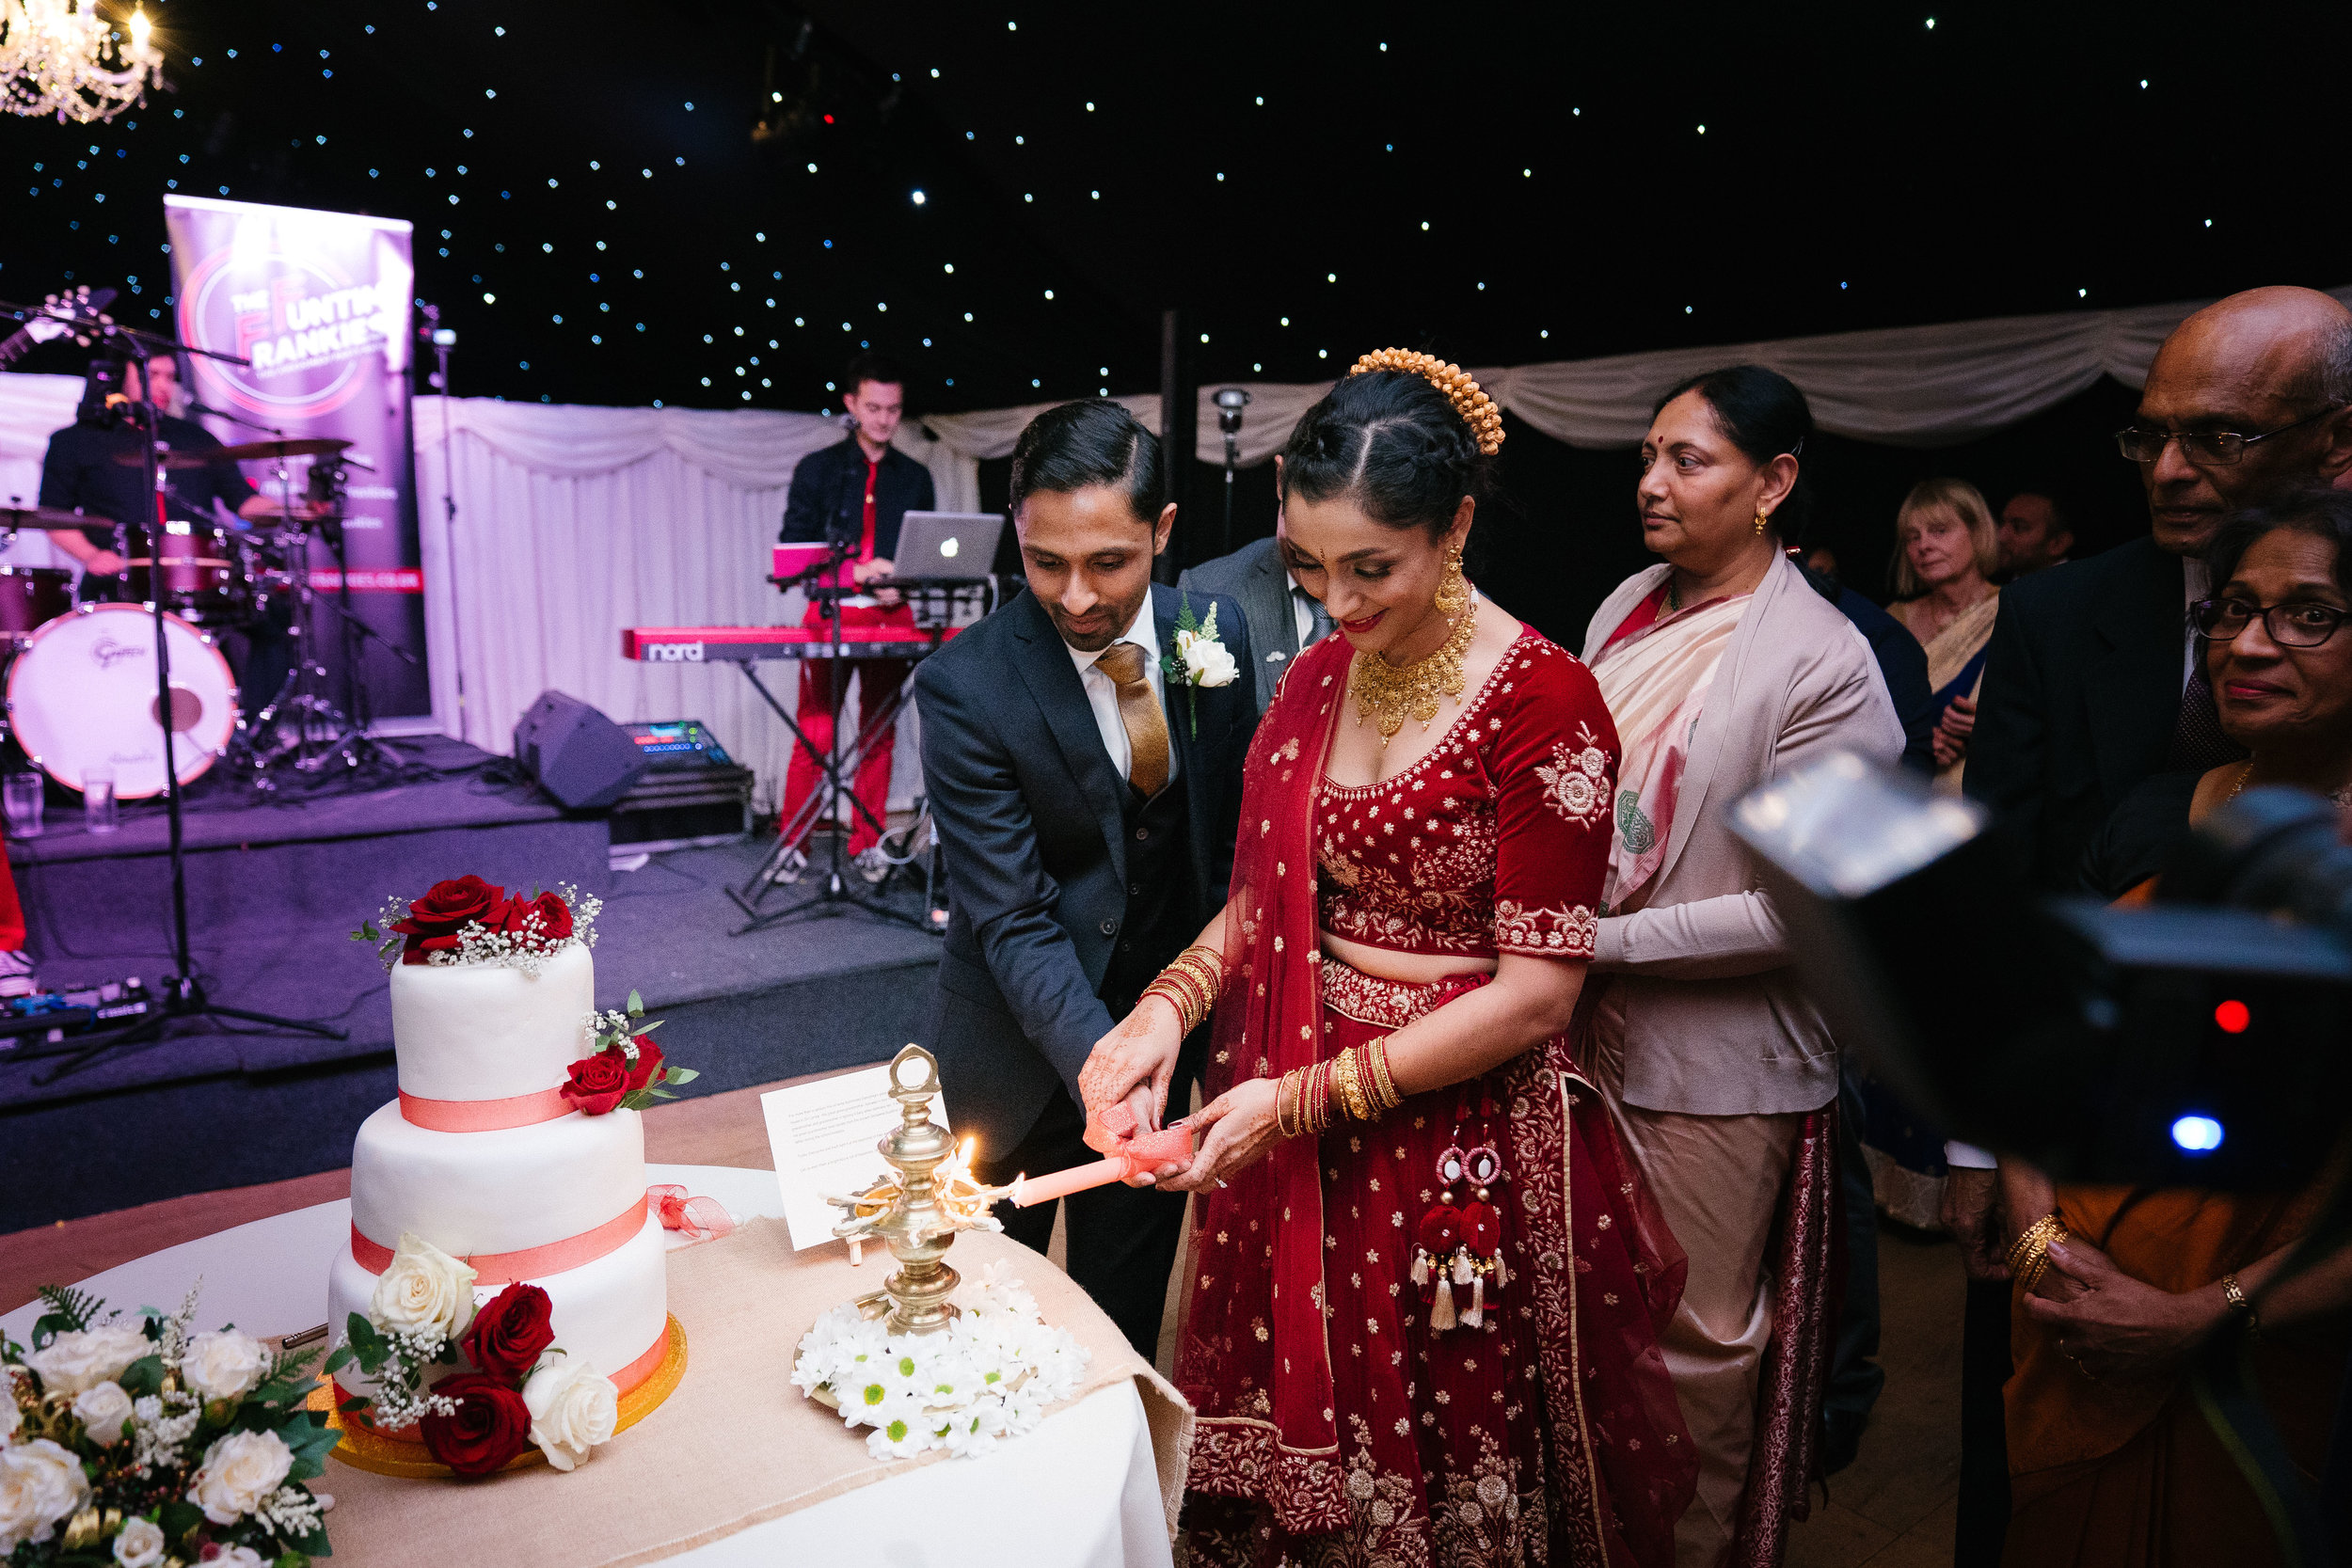 heaton-house-christmas-winter-wedding-photography-videography-manchester-77